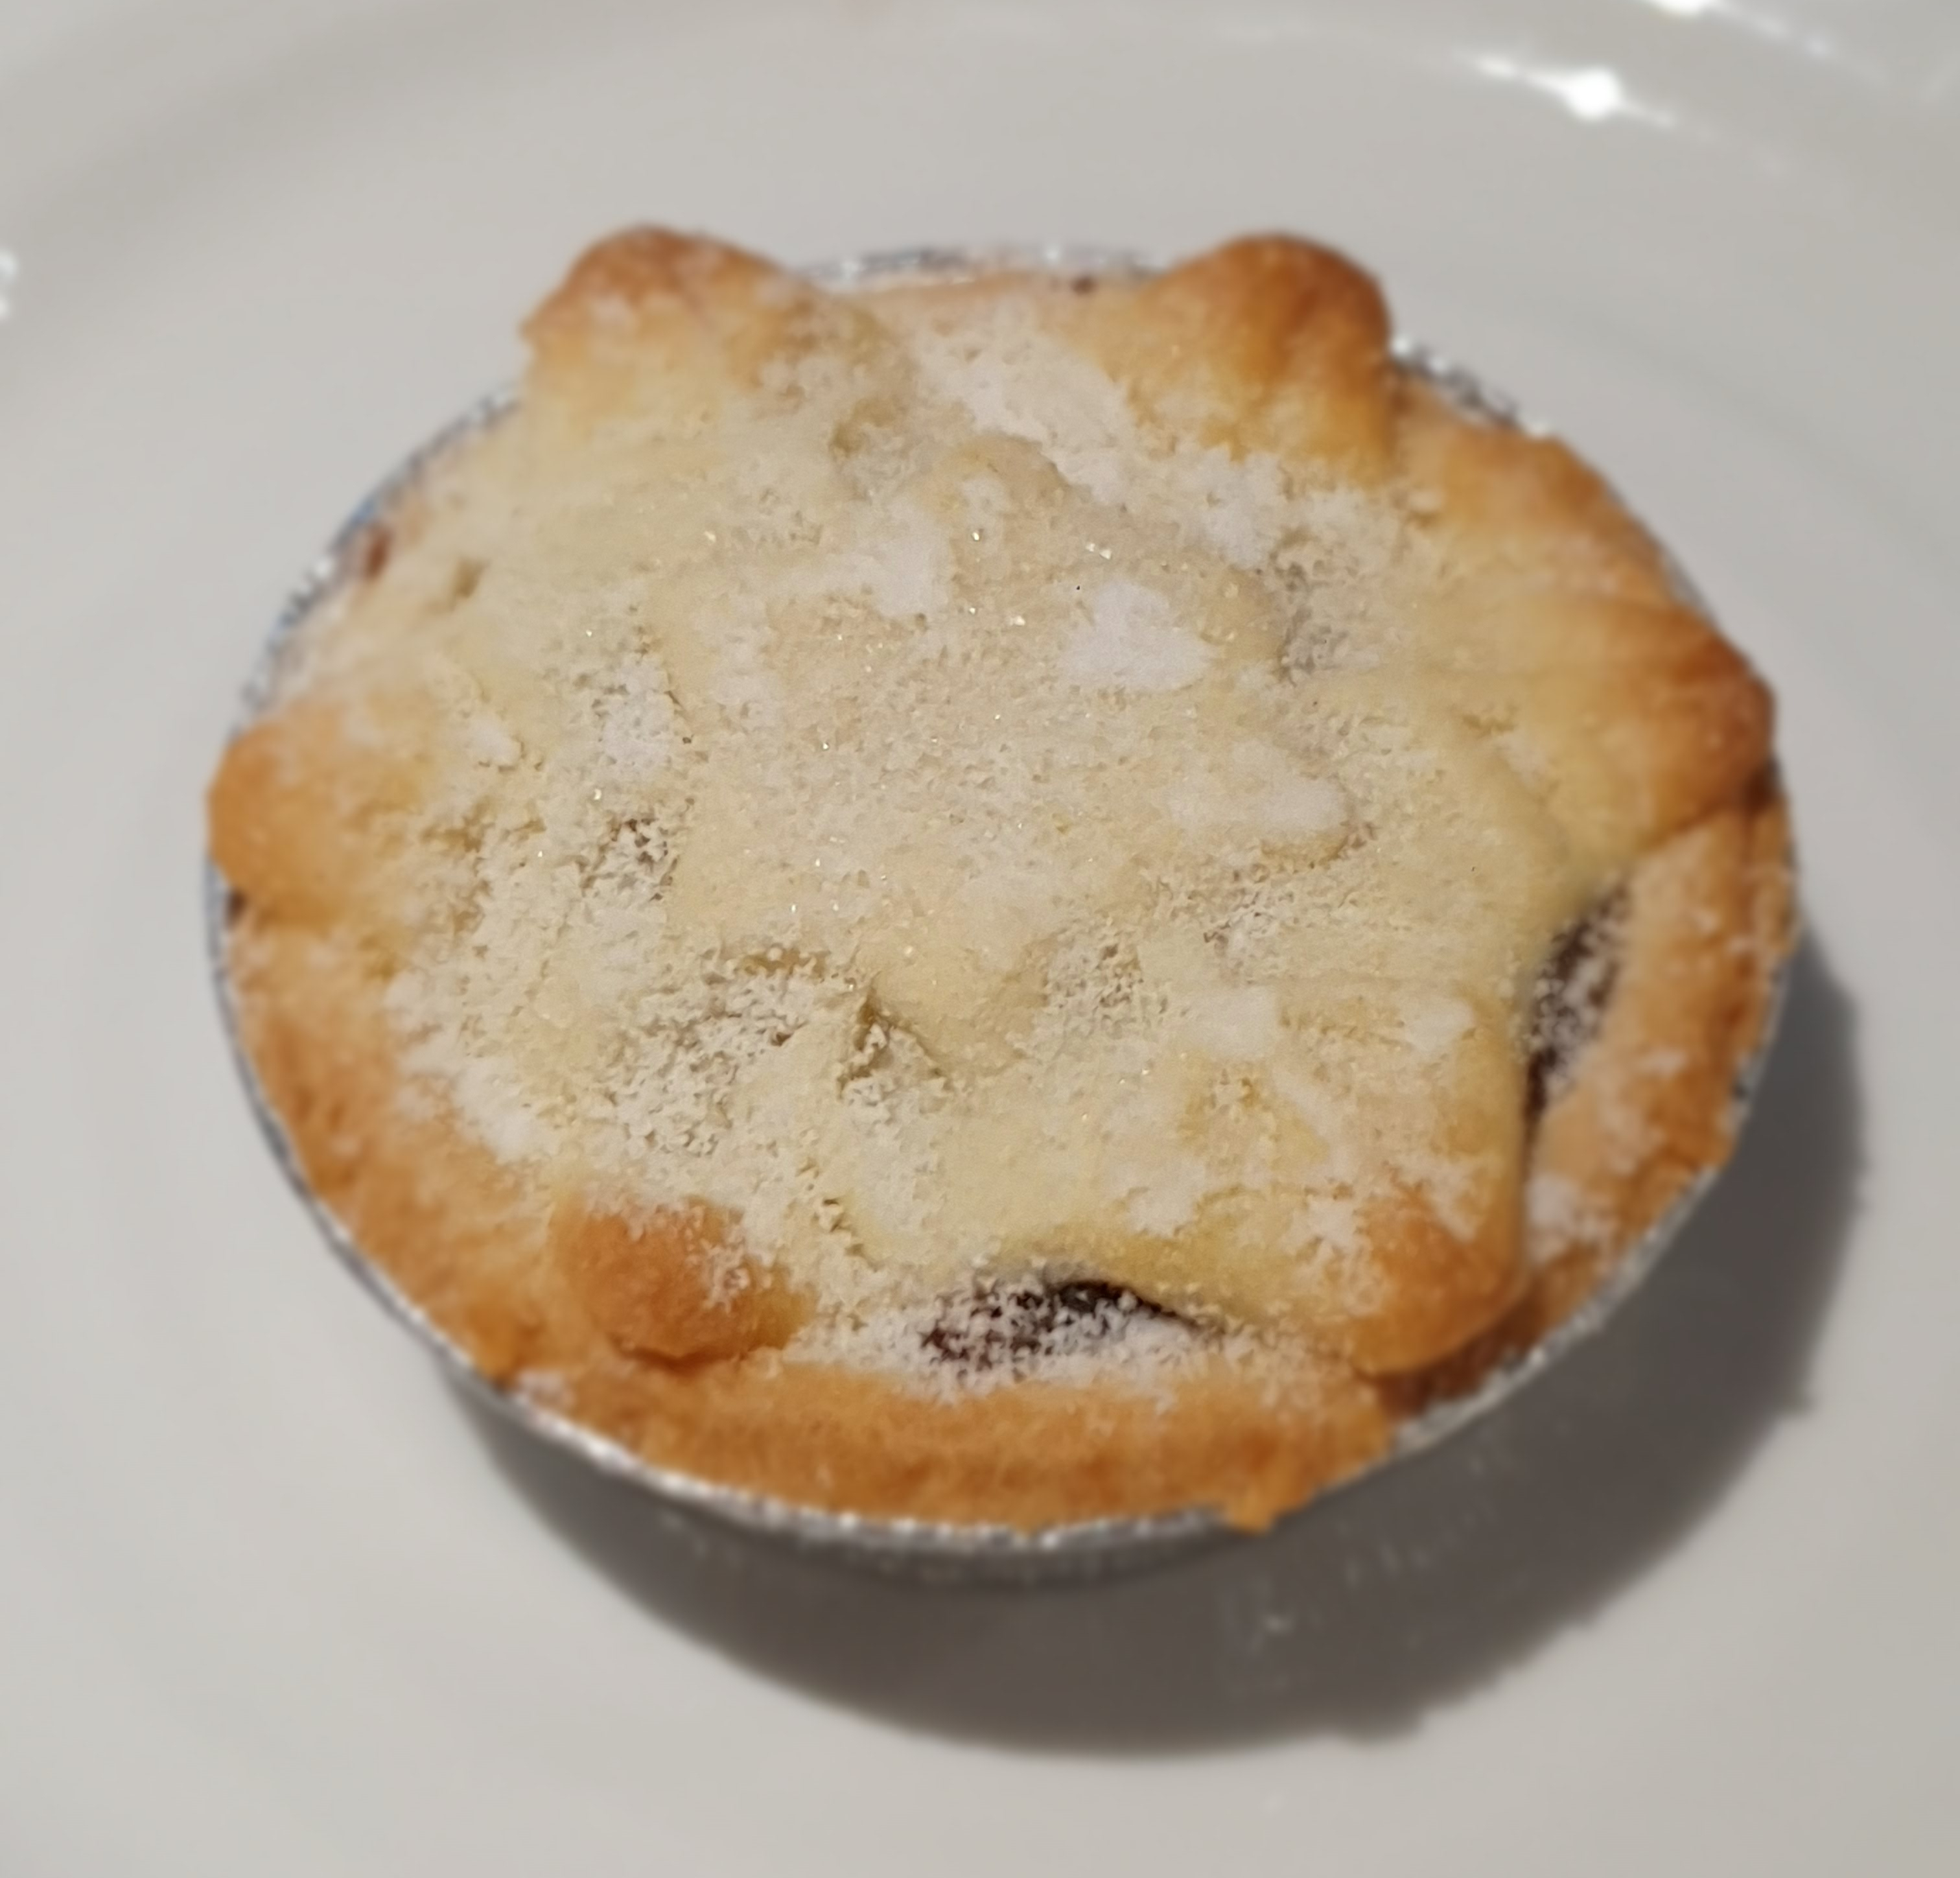 Marks and Spencer mince pie